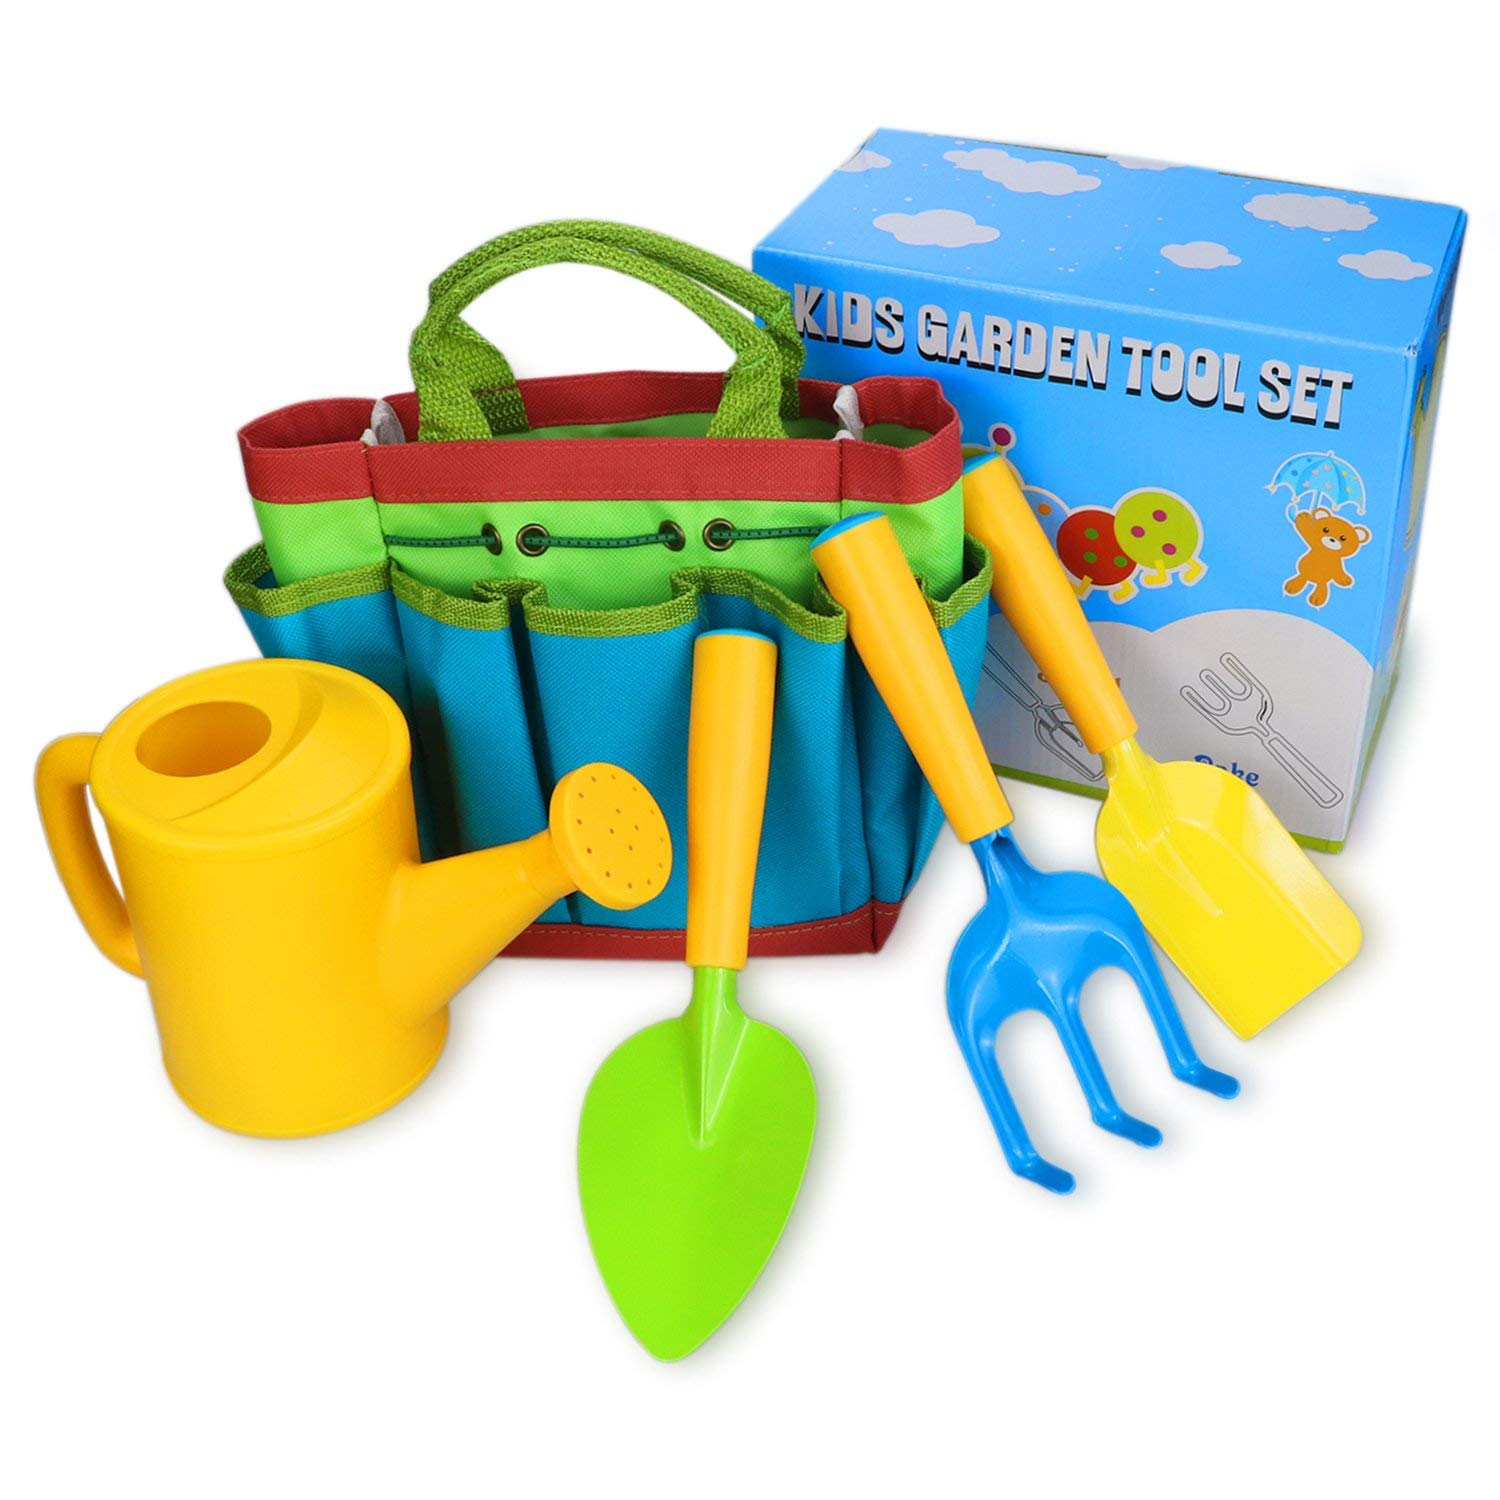 LUNIQI Kids Garden Tools Set for Kids to do Gardening & Planting, Garden Tools for Weeding or Outdoor Play, Great Gift for a Little Gardener